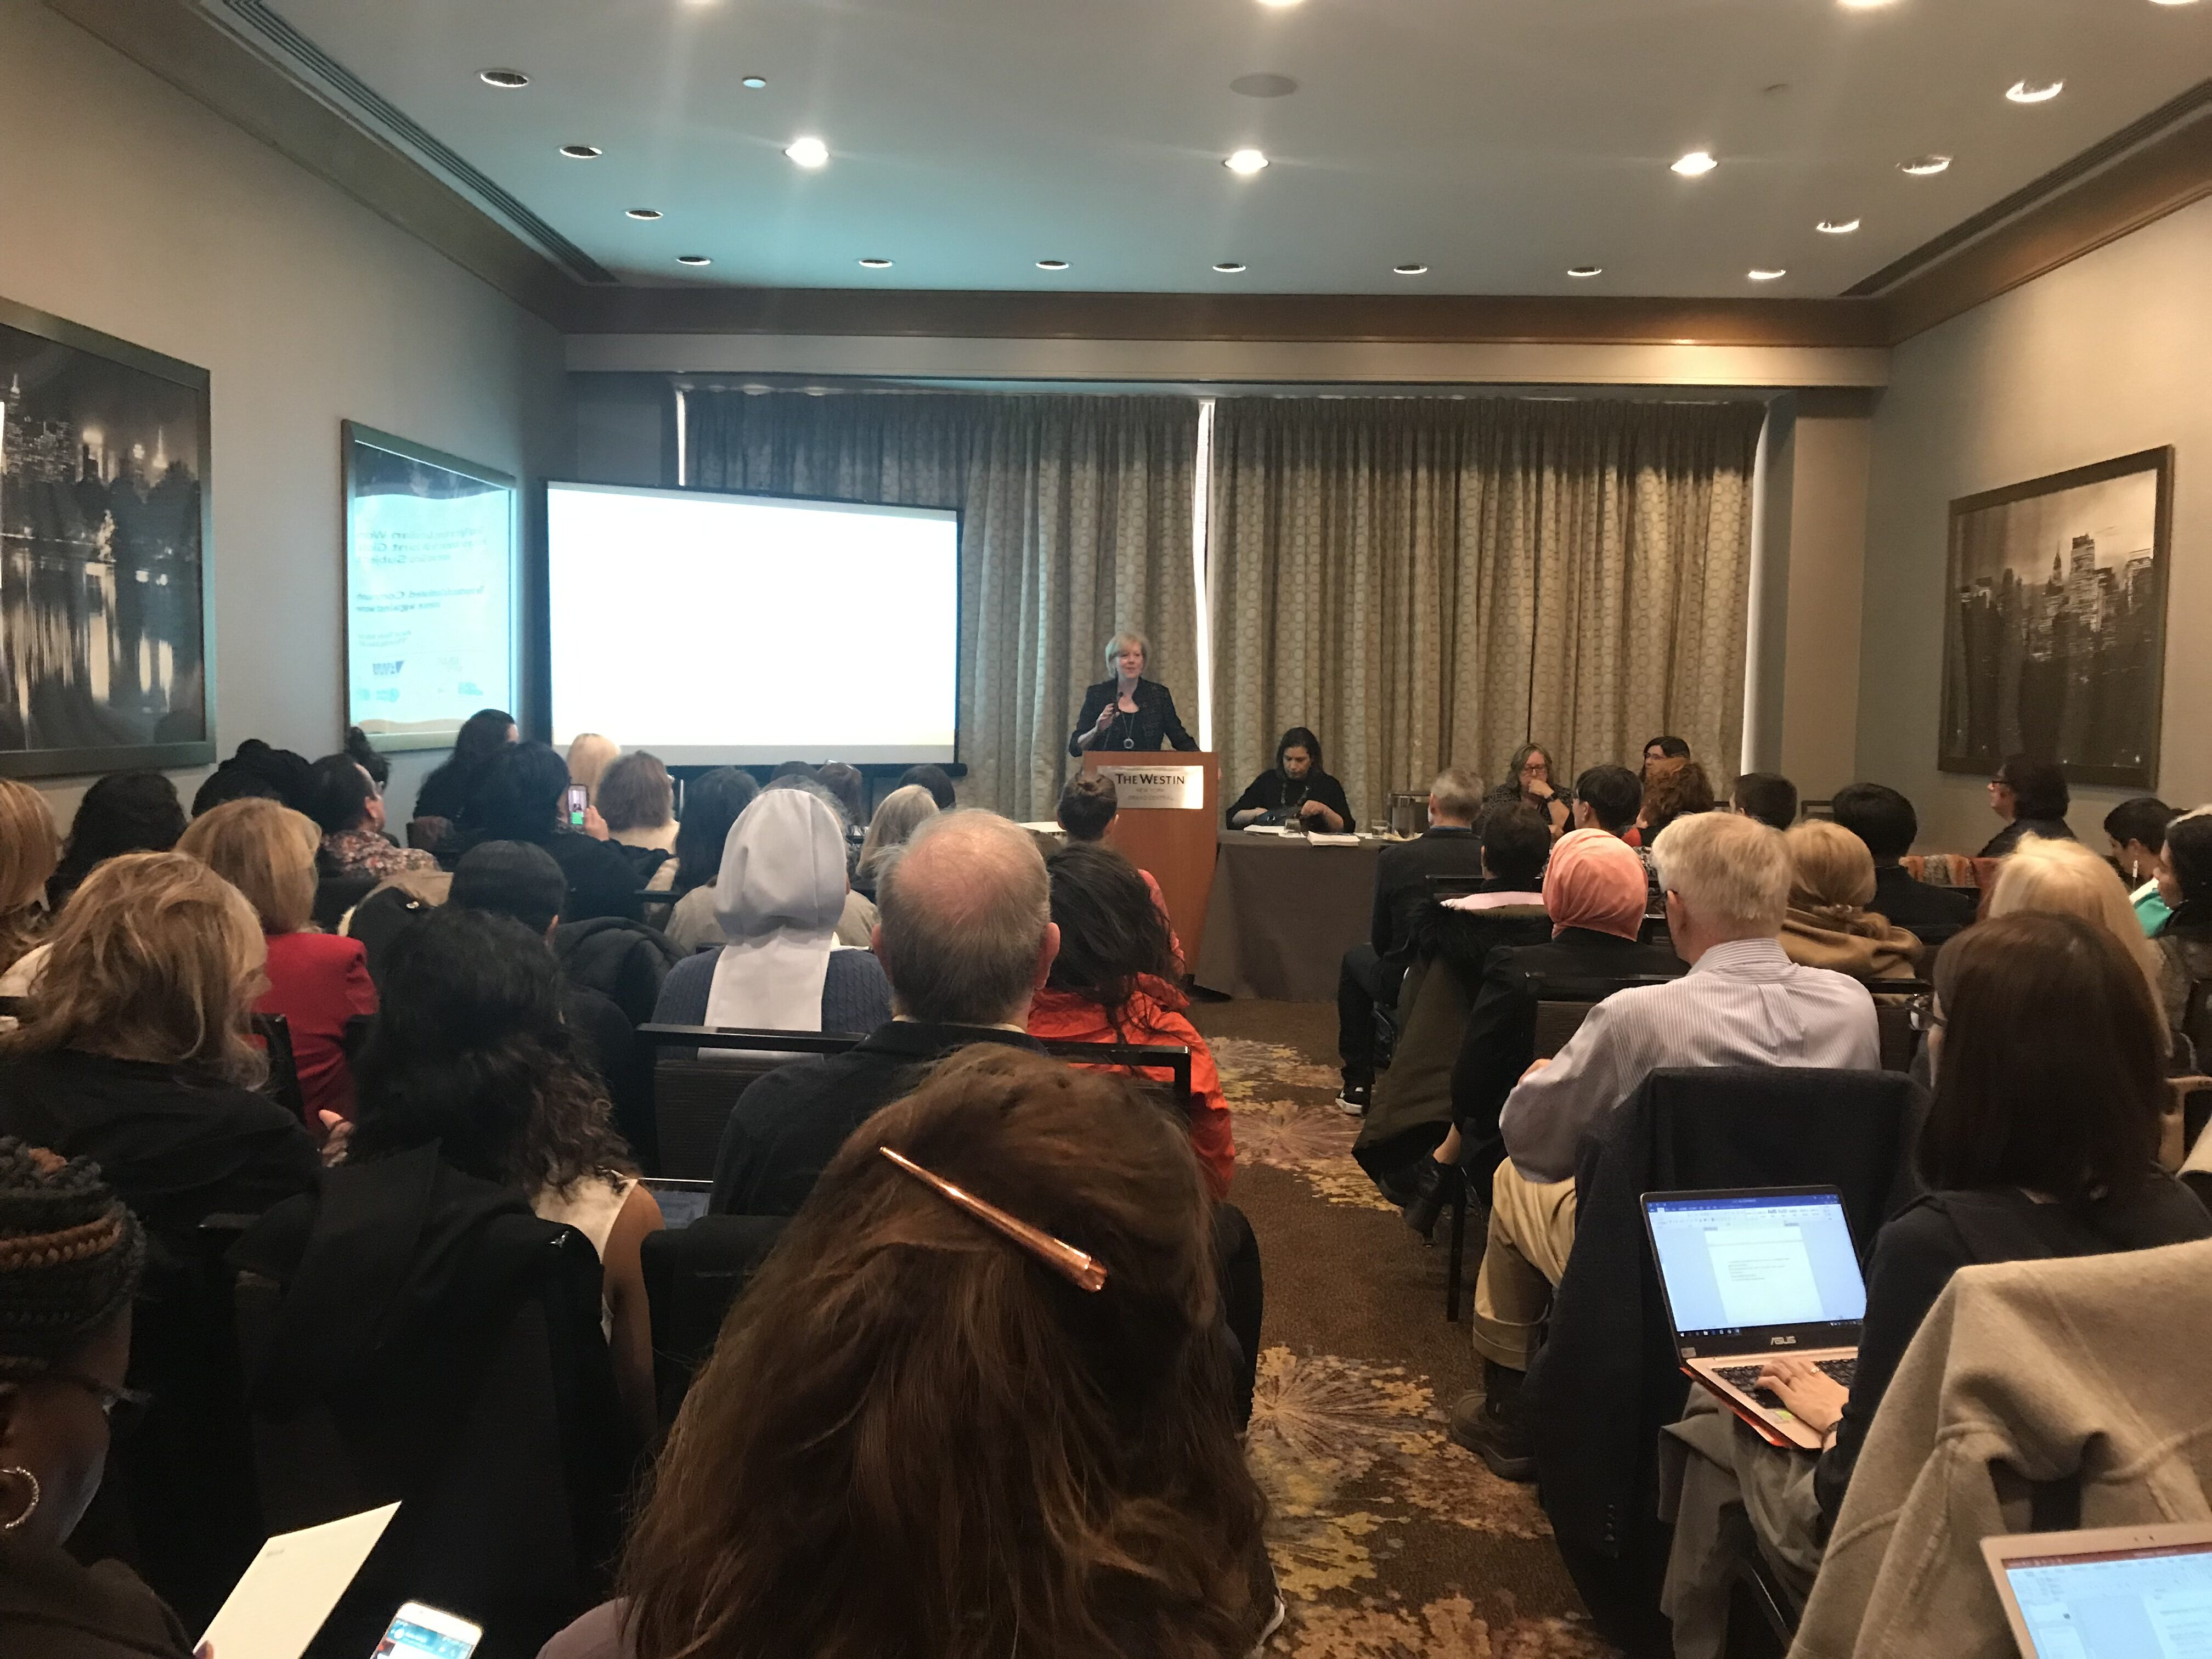 Attending CSW 2019: The Global Convening On Women's Rights